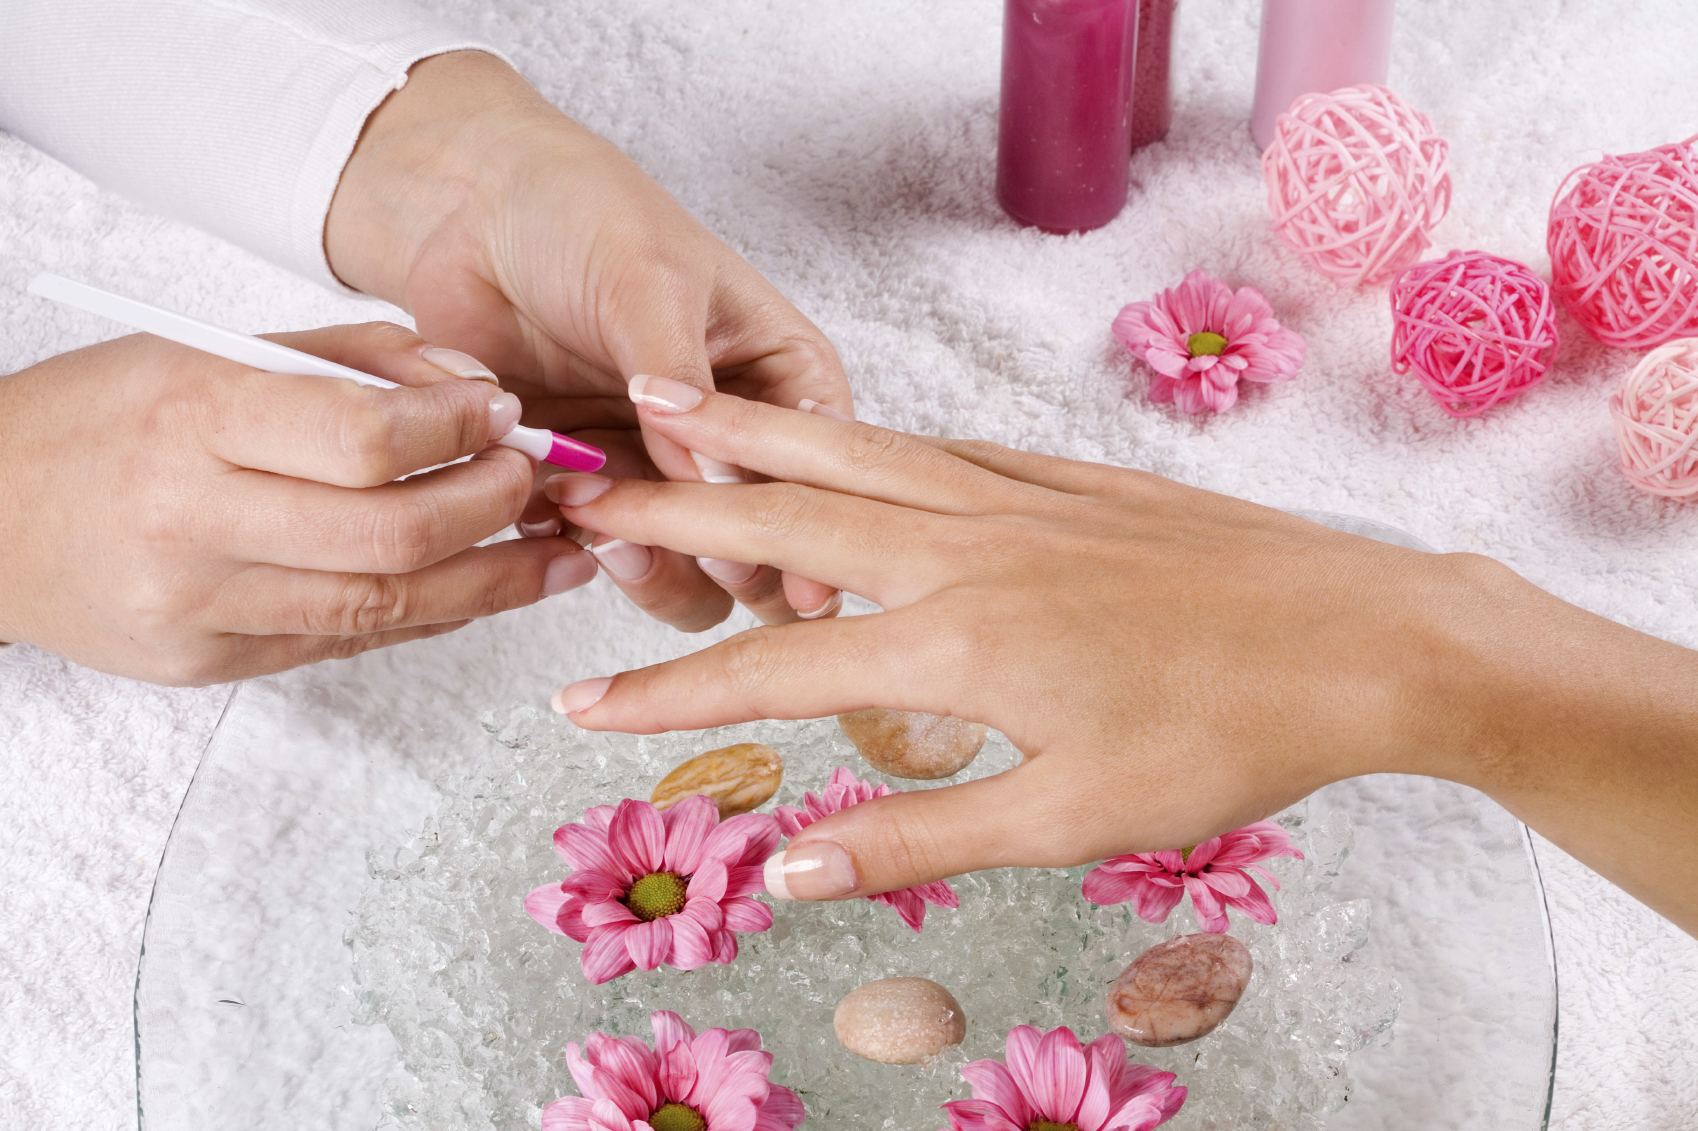 14 day chip free manicure with revolutionary product offered at adora